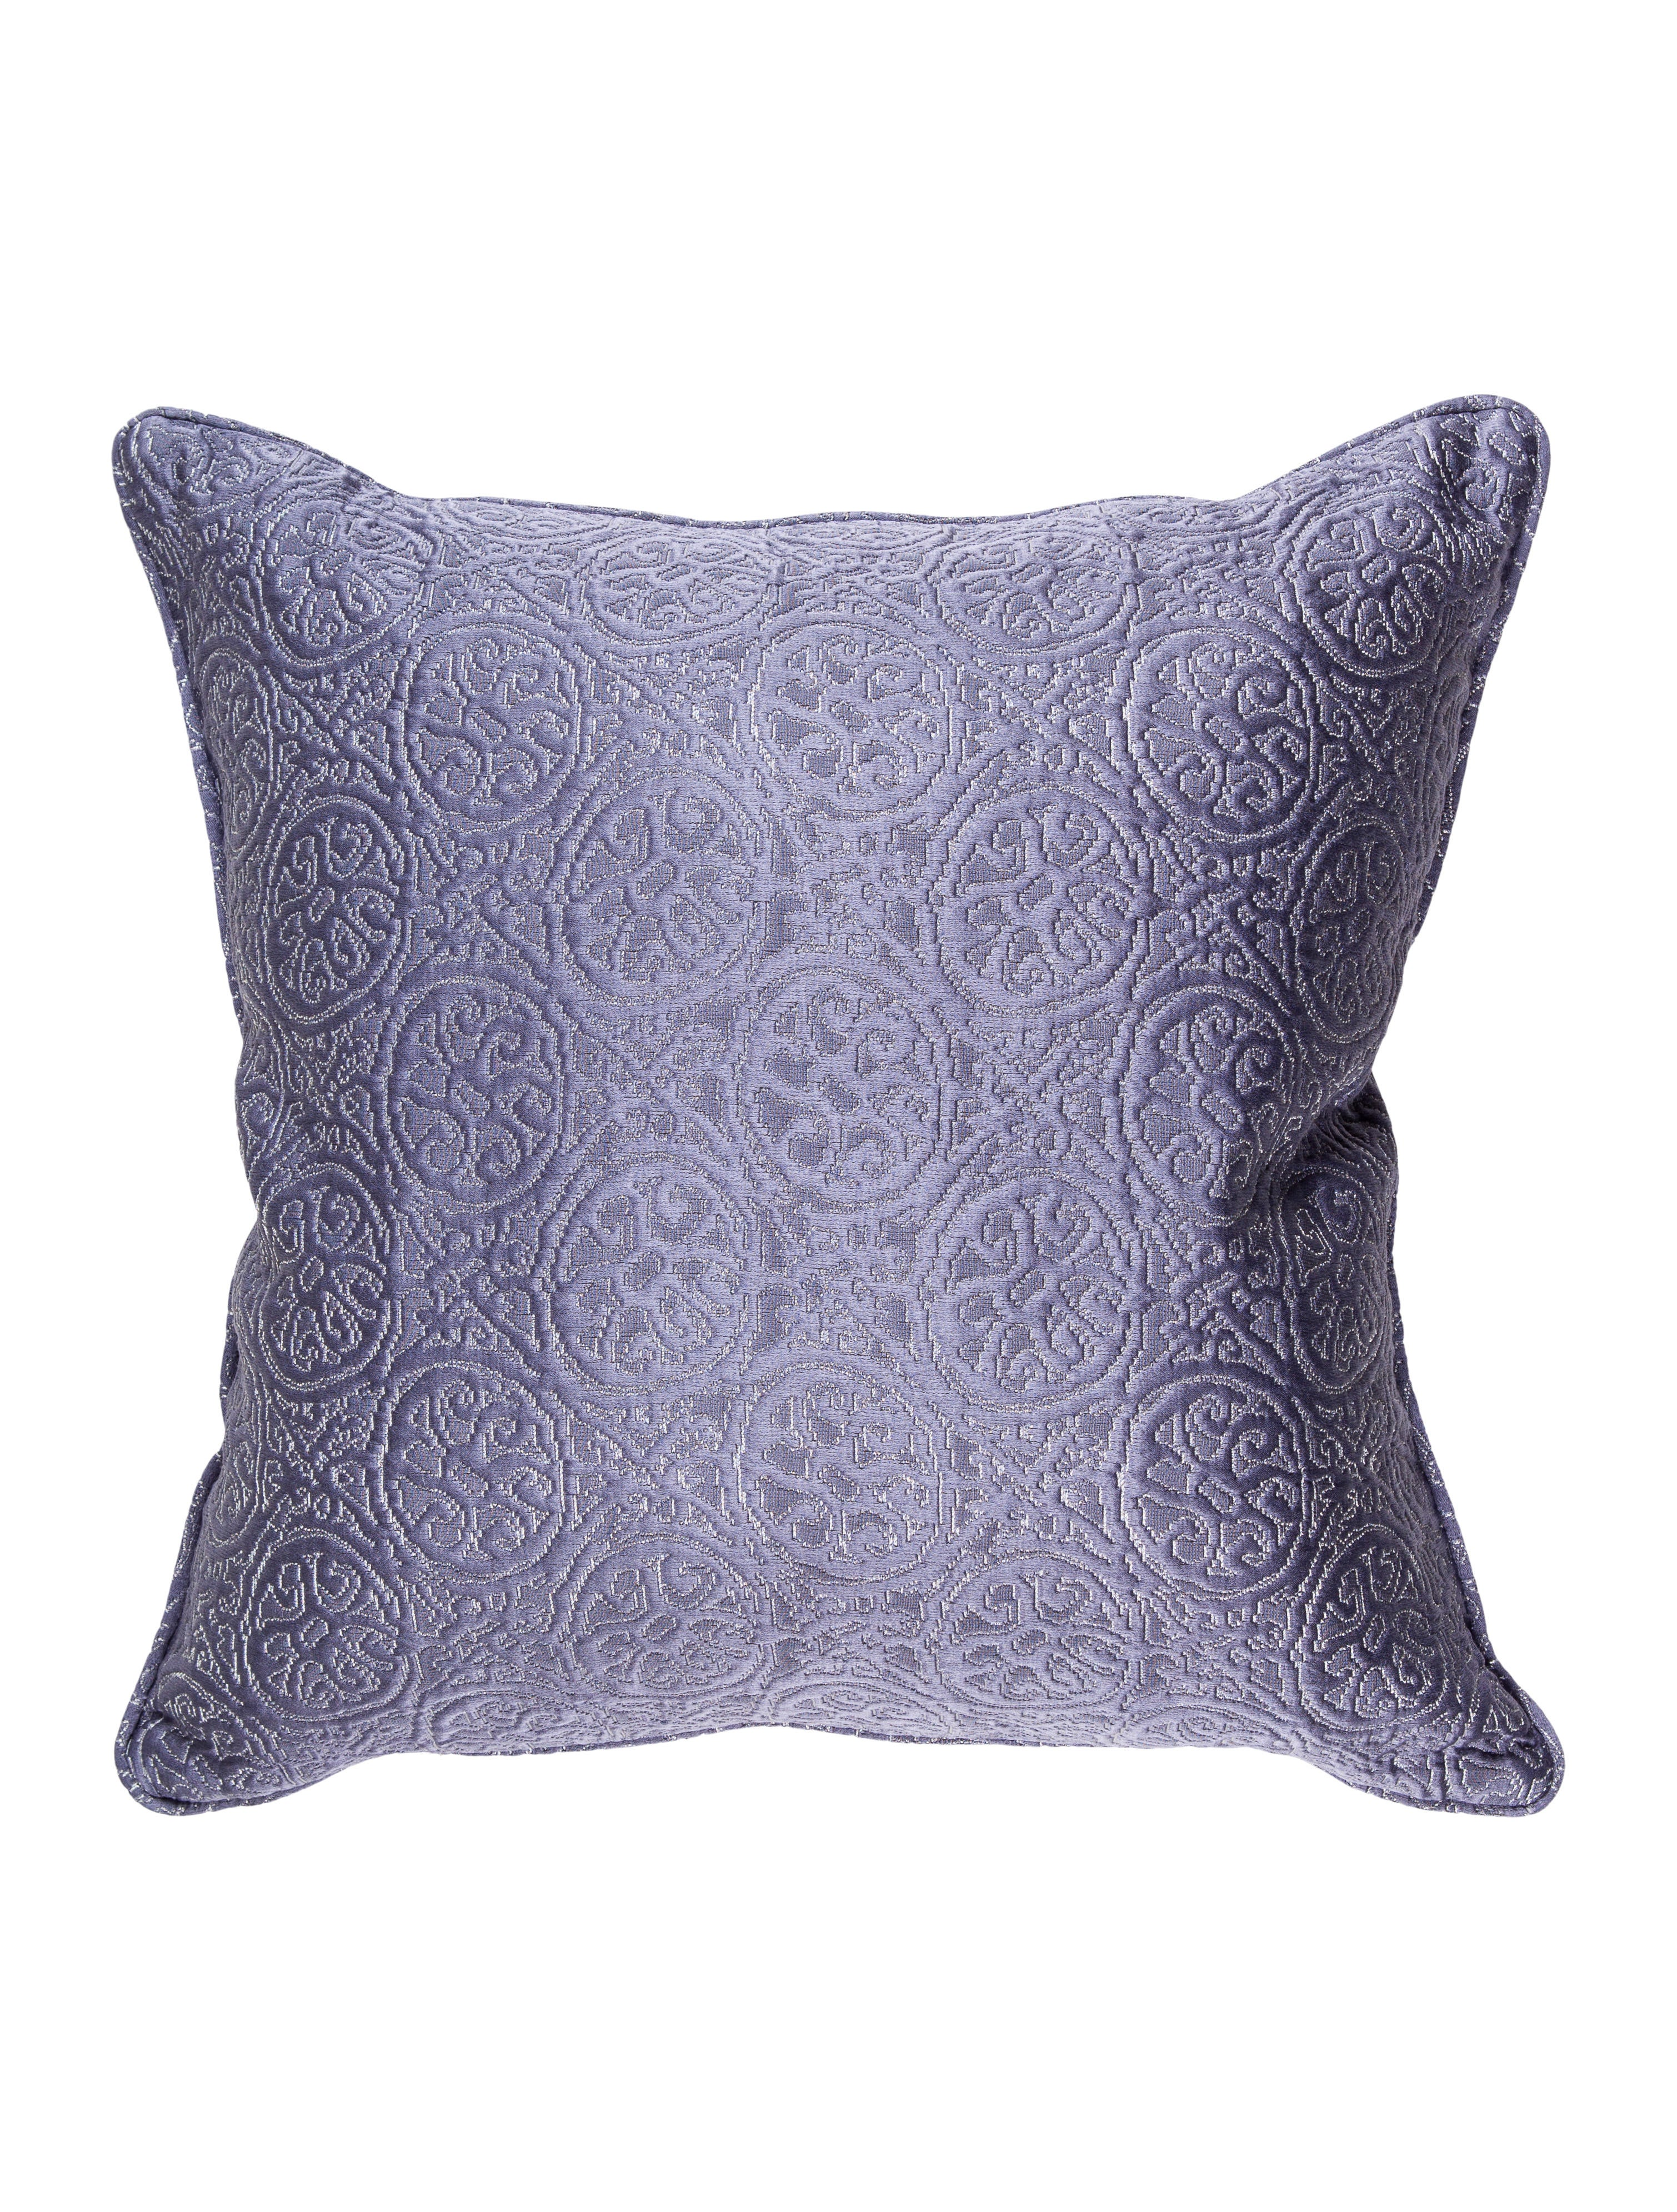 Frette Violet Curiosity Throw Pillow - Pillows And Throws - FRT20120 The RealReal